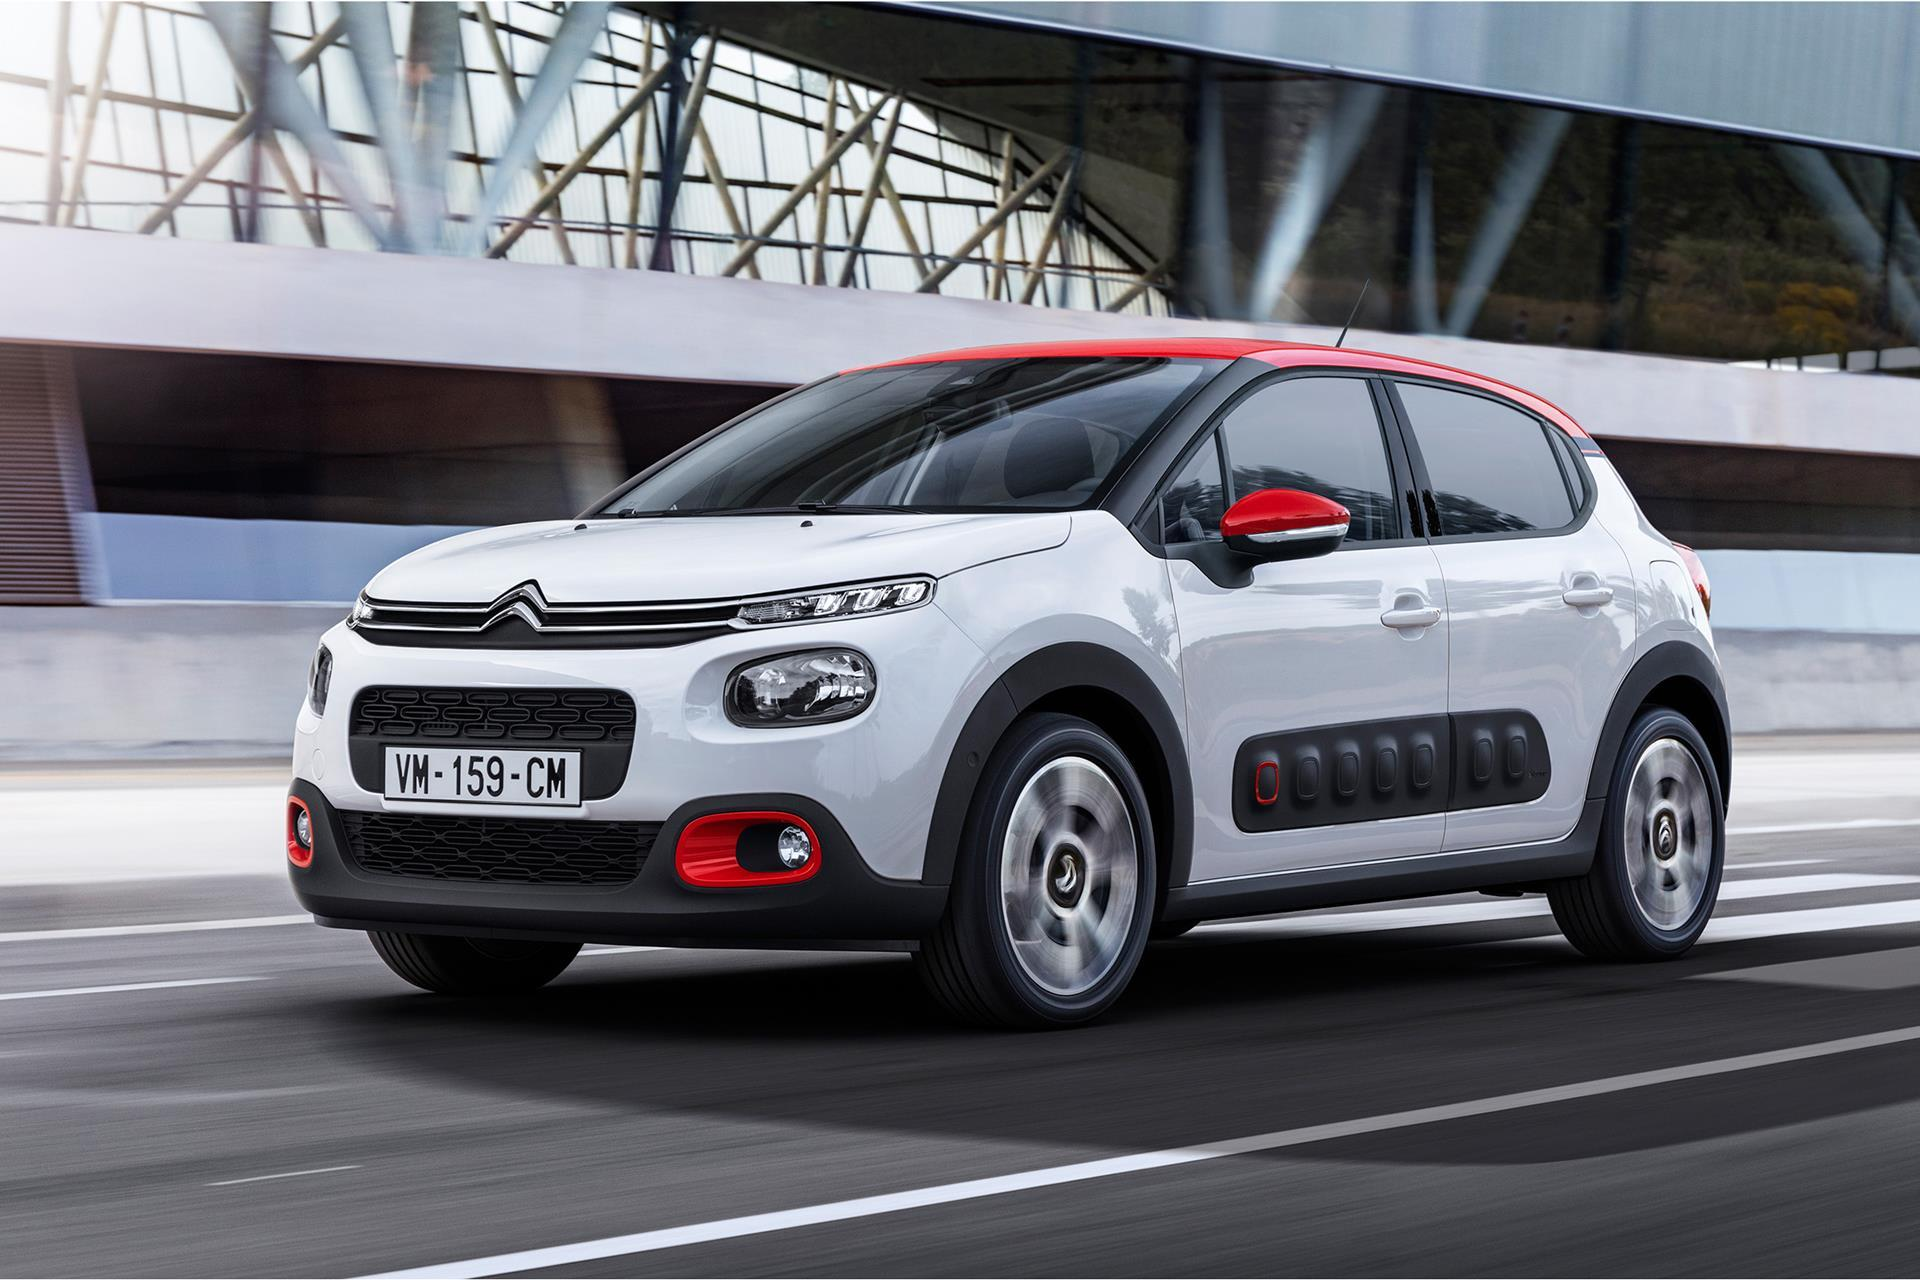 2016 Citroen C3 Wallpaper and Image Gallery conceptcarzco